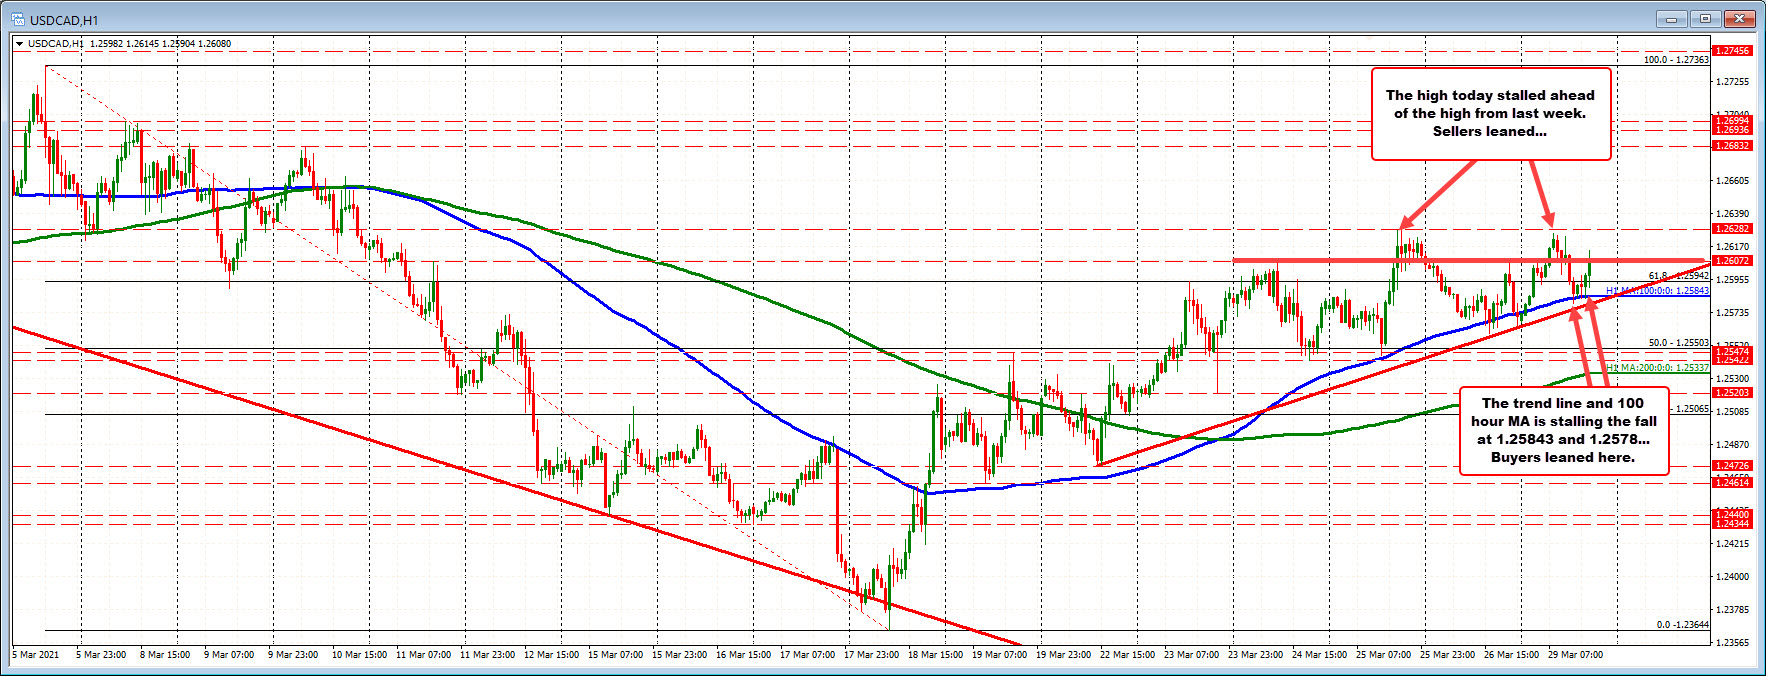 USDCAD higher on the day, and finding buyers on dips near technical levels